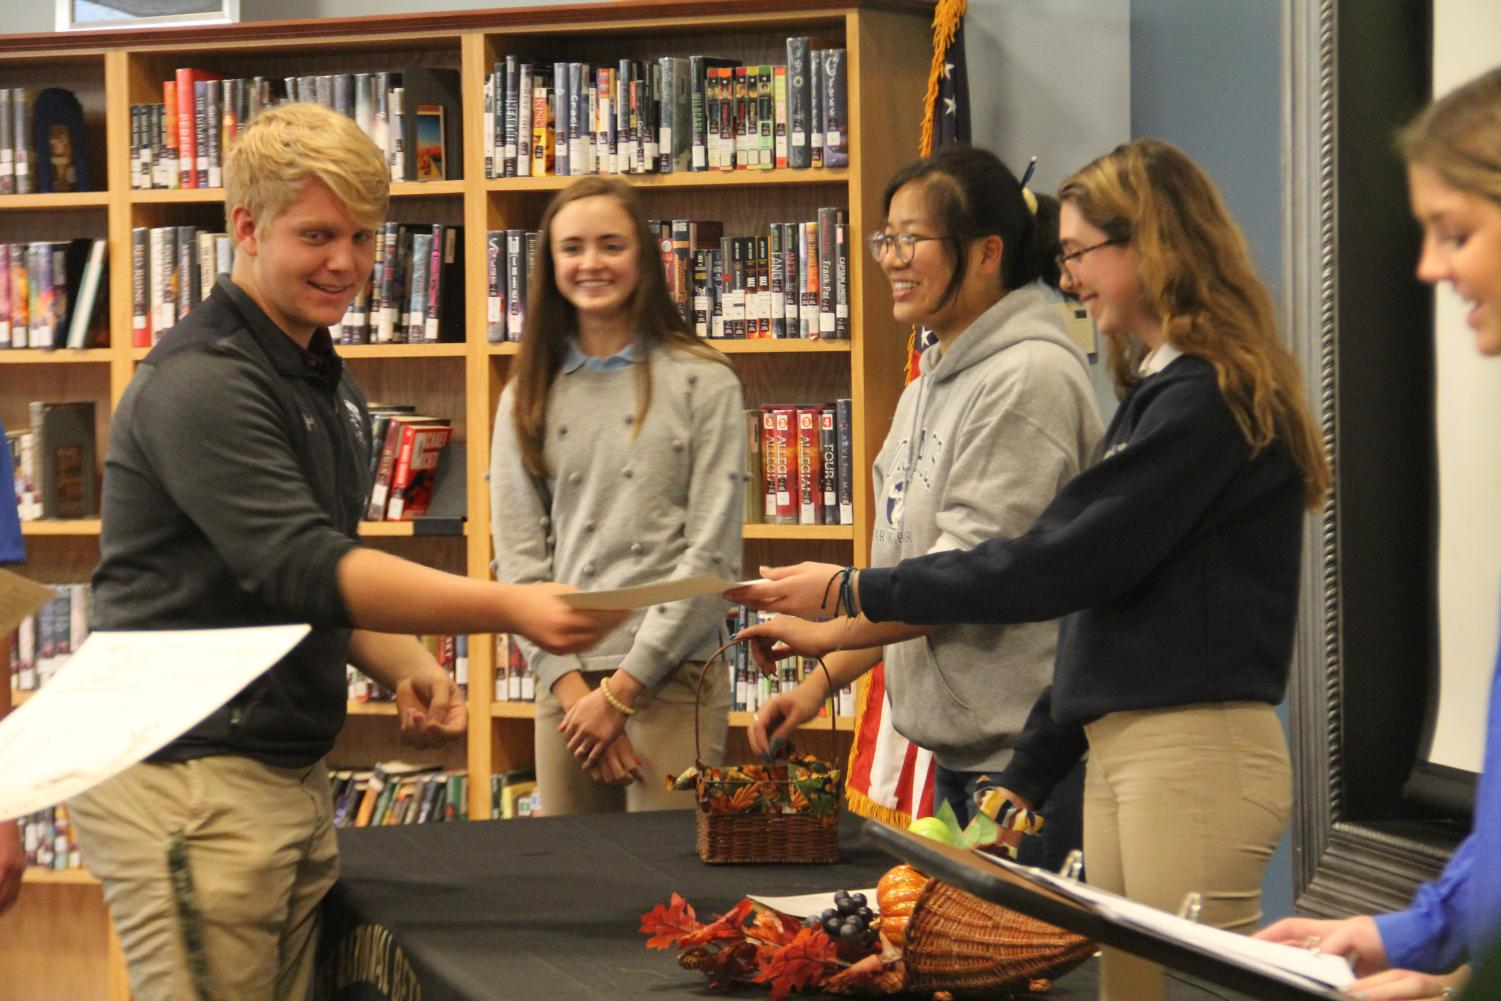 Sam Tipton, 12, receives his certificate from the Beta Club officers during the induction ceremony on Oct. 30.